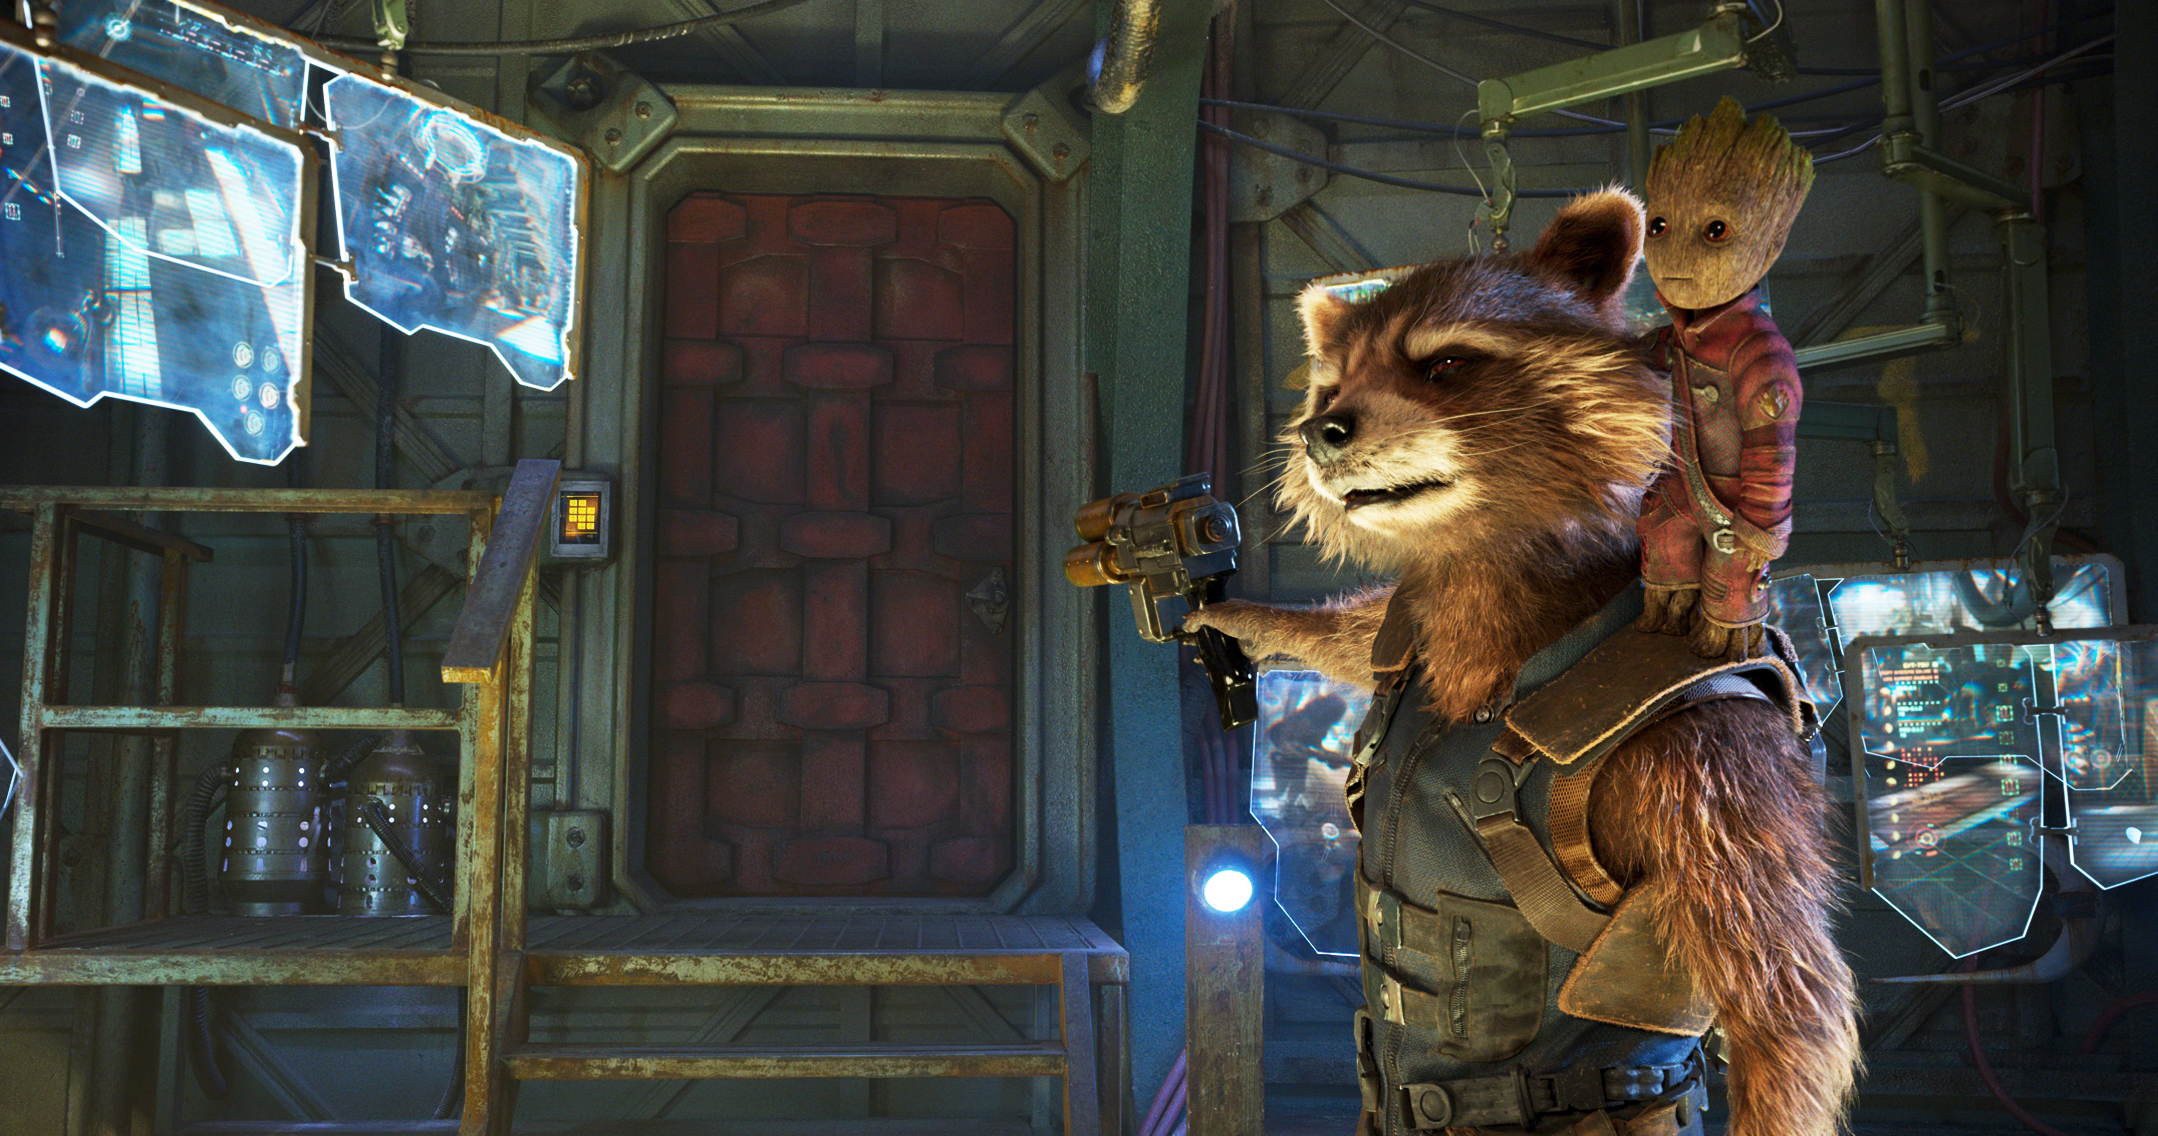 Rocket, voiced by Bradley Cooper, and Groot, voiced by Vin Diesel in <i>Guardians Of The Galaxy Vol. 2</i>.